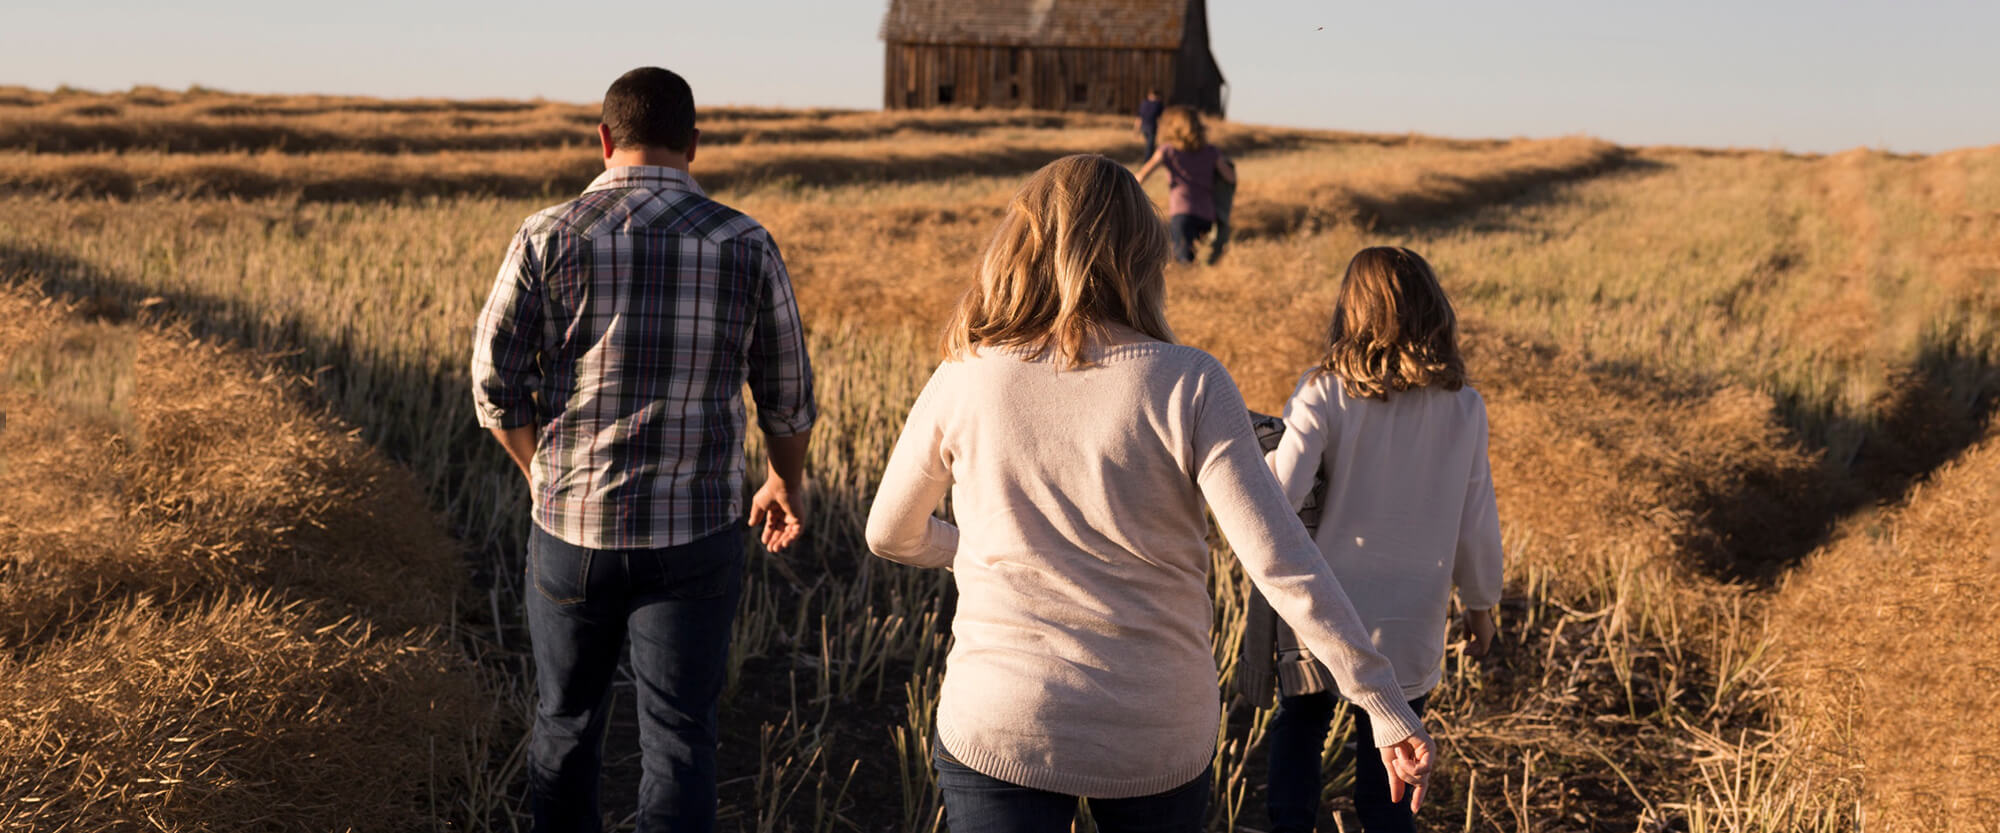 Family walking in a field